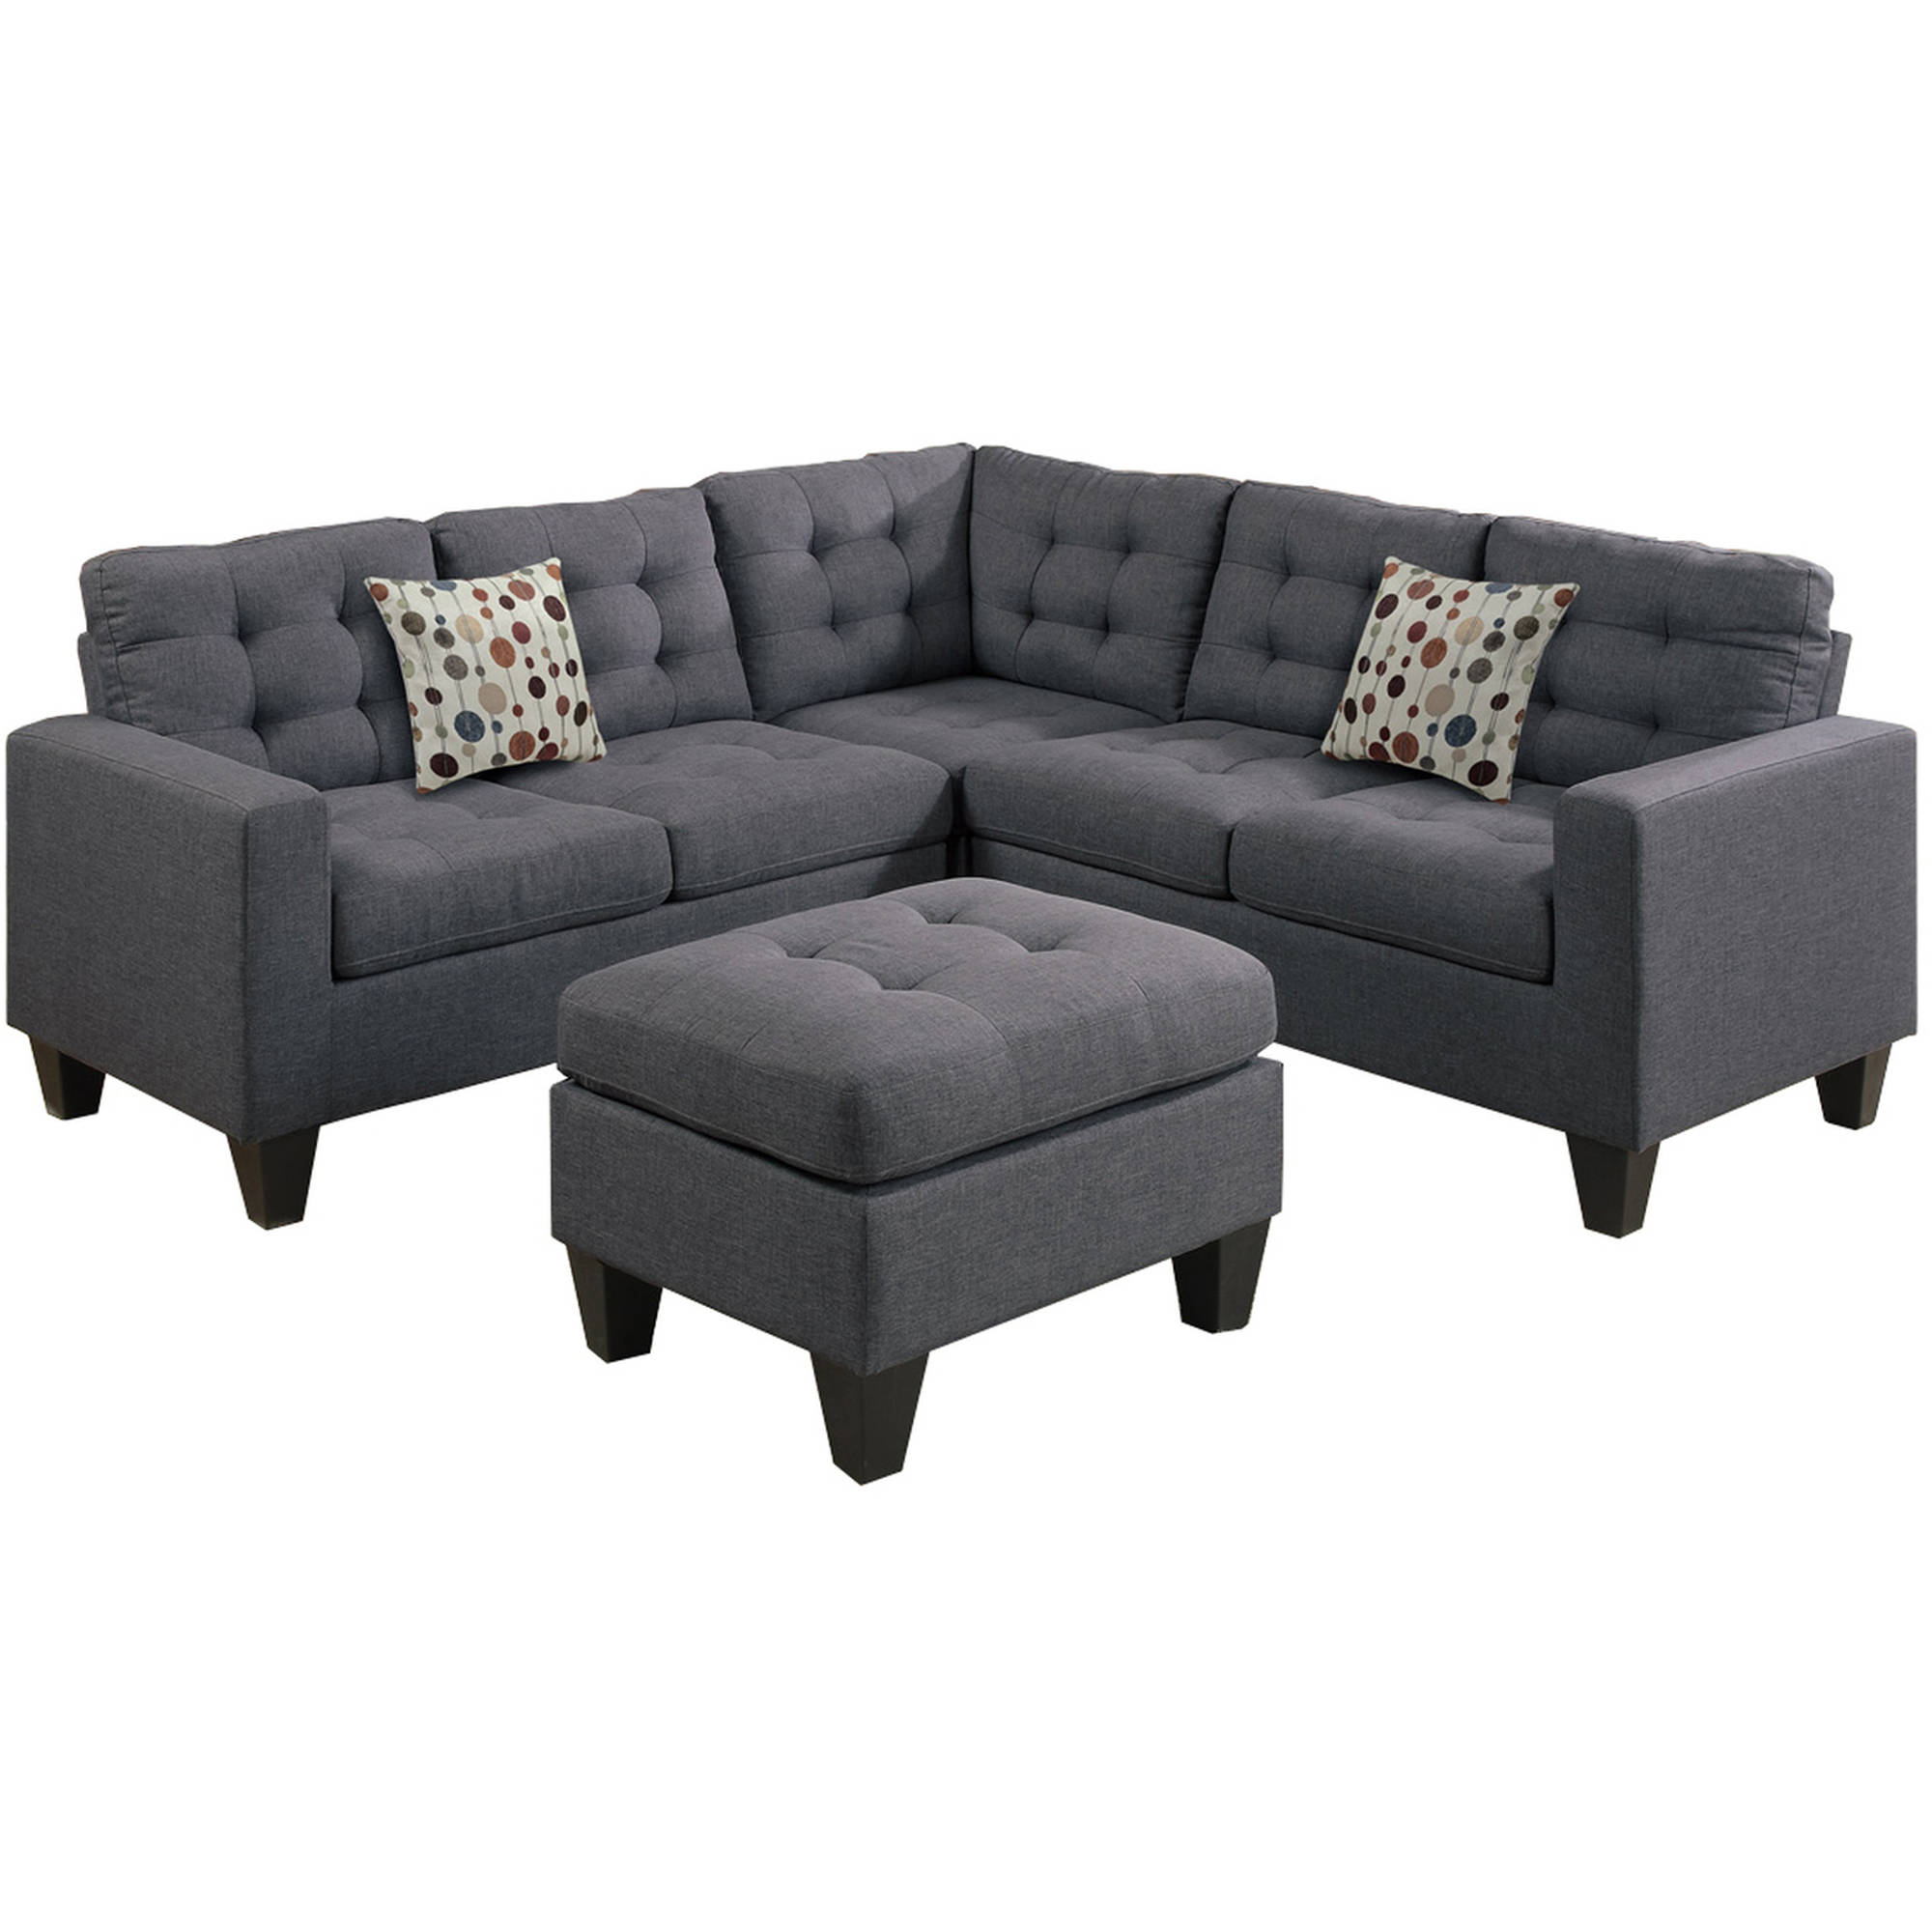 Bobkona Norton 4-Piece Sectional with Ottoman Set, Multiple Colors